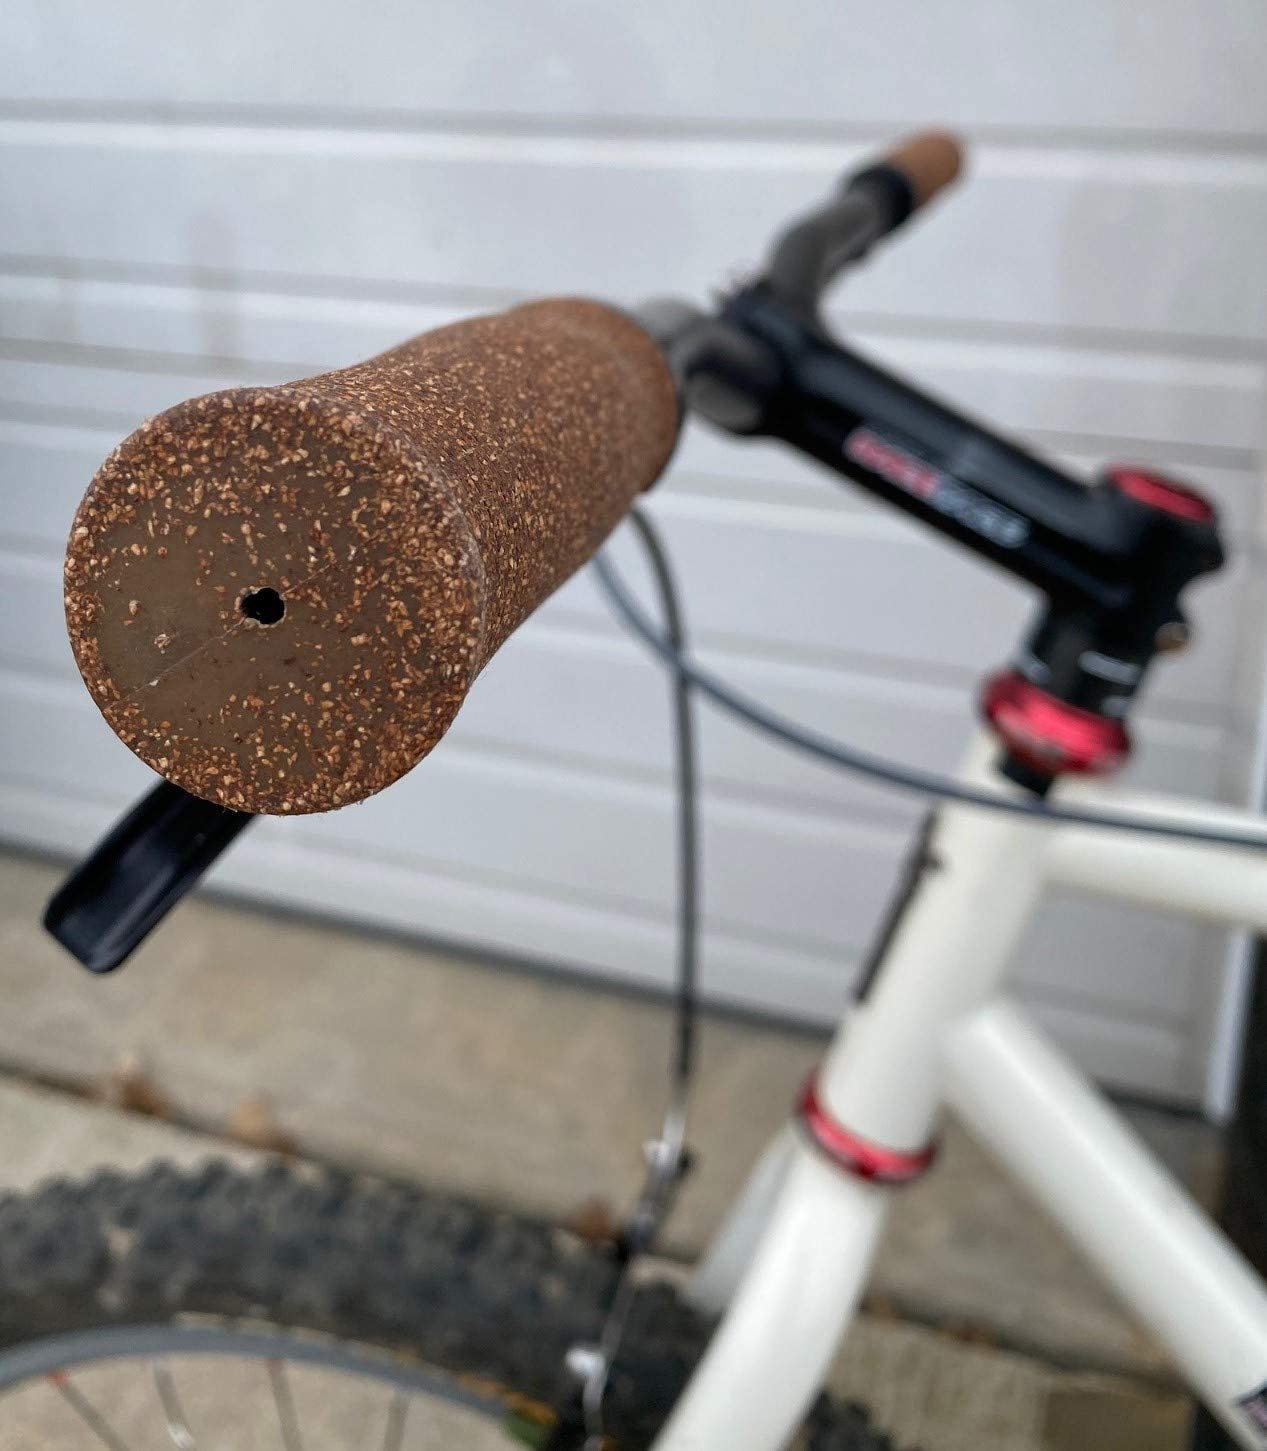 Mountain and Flat Bar Road Bicycles Dark Brown for MTB BMX Electric Planet Bike Happy Hands Dura Cork Handlebar Grips and End Plugs for Locking to Bikes ATB